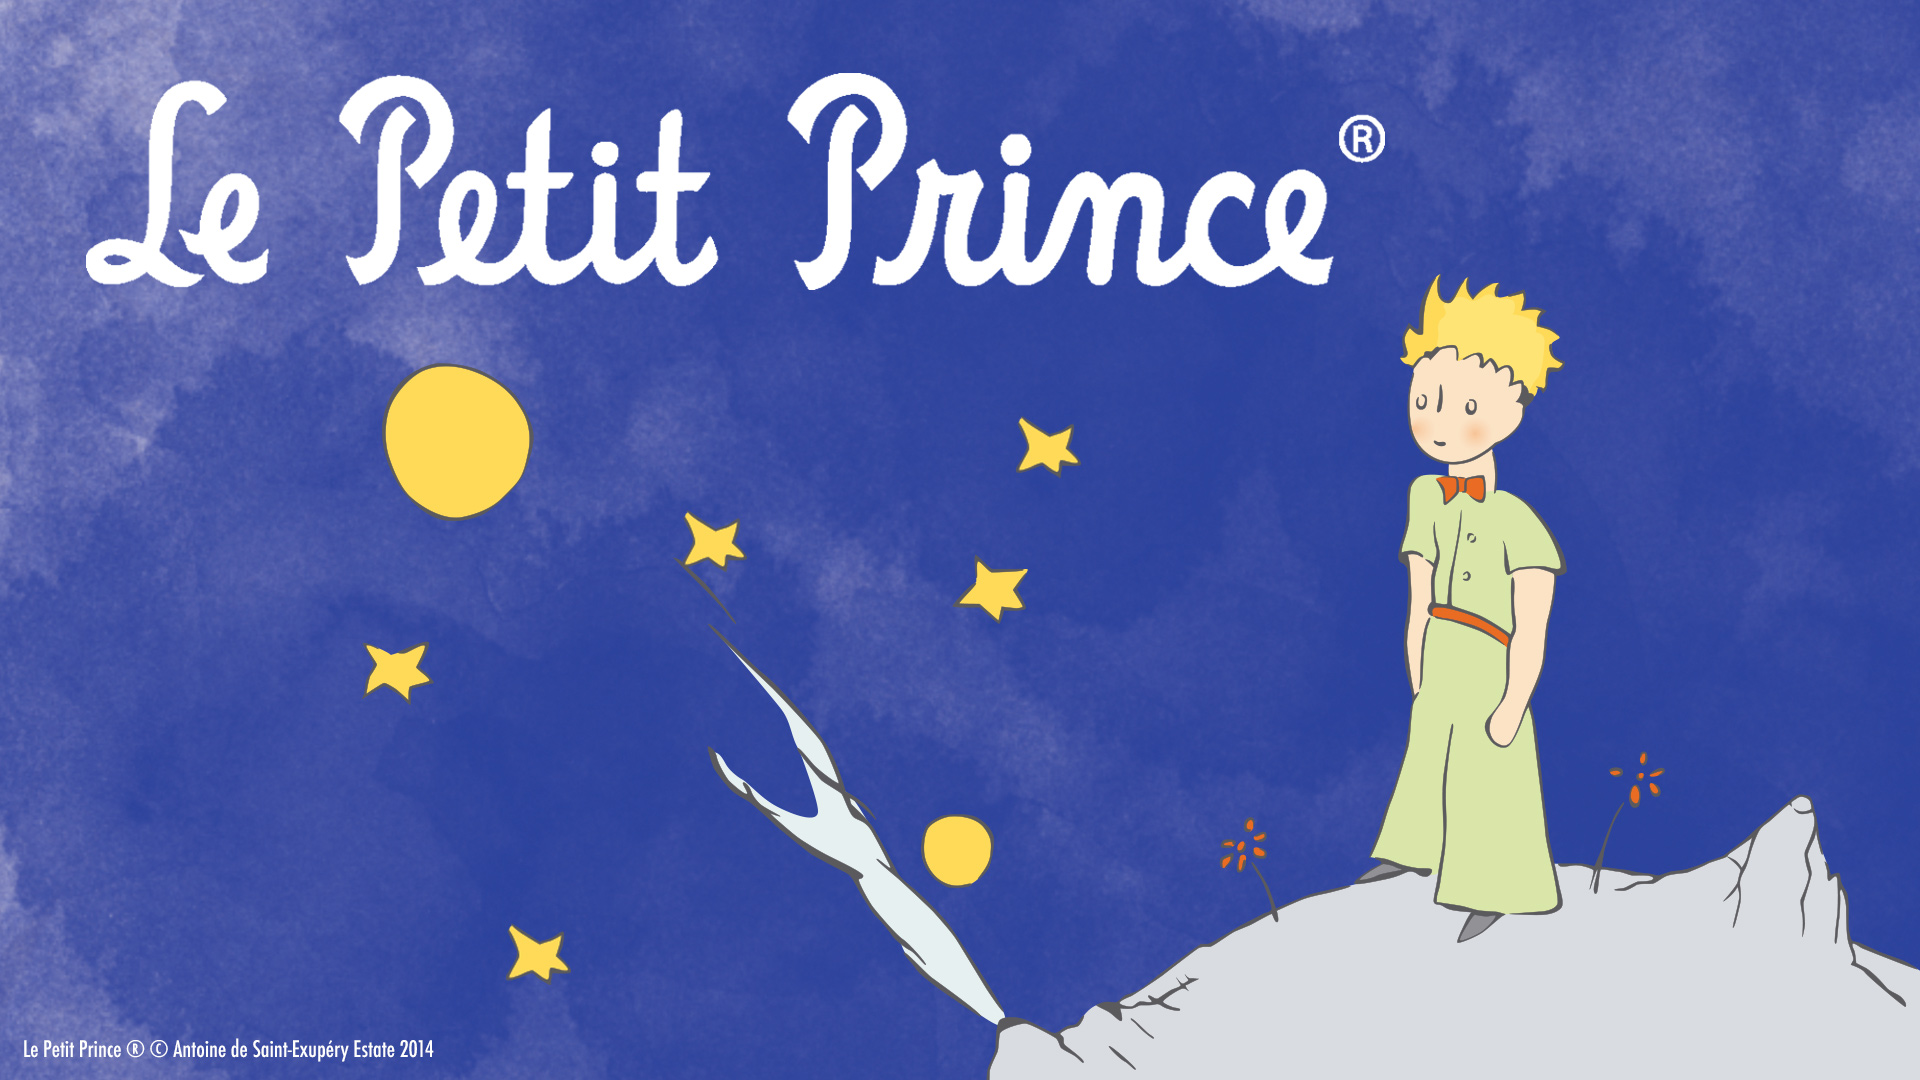 Le Petit Prince Tycoon